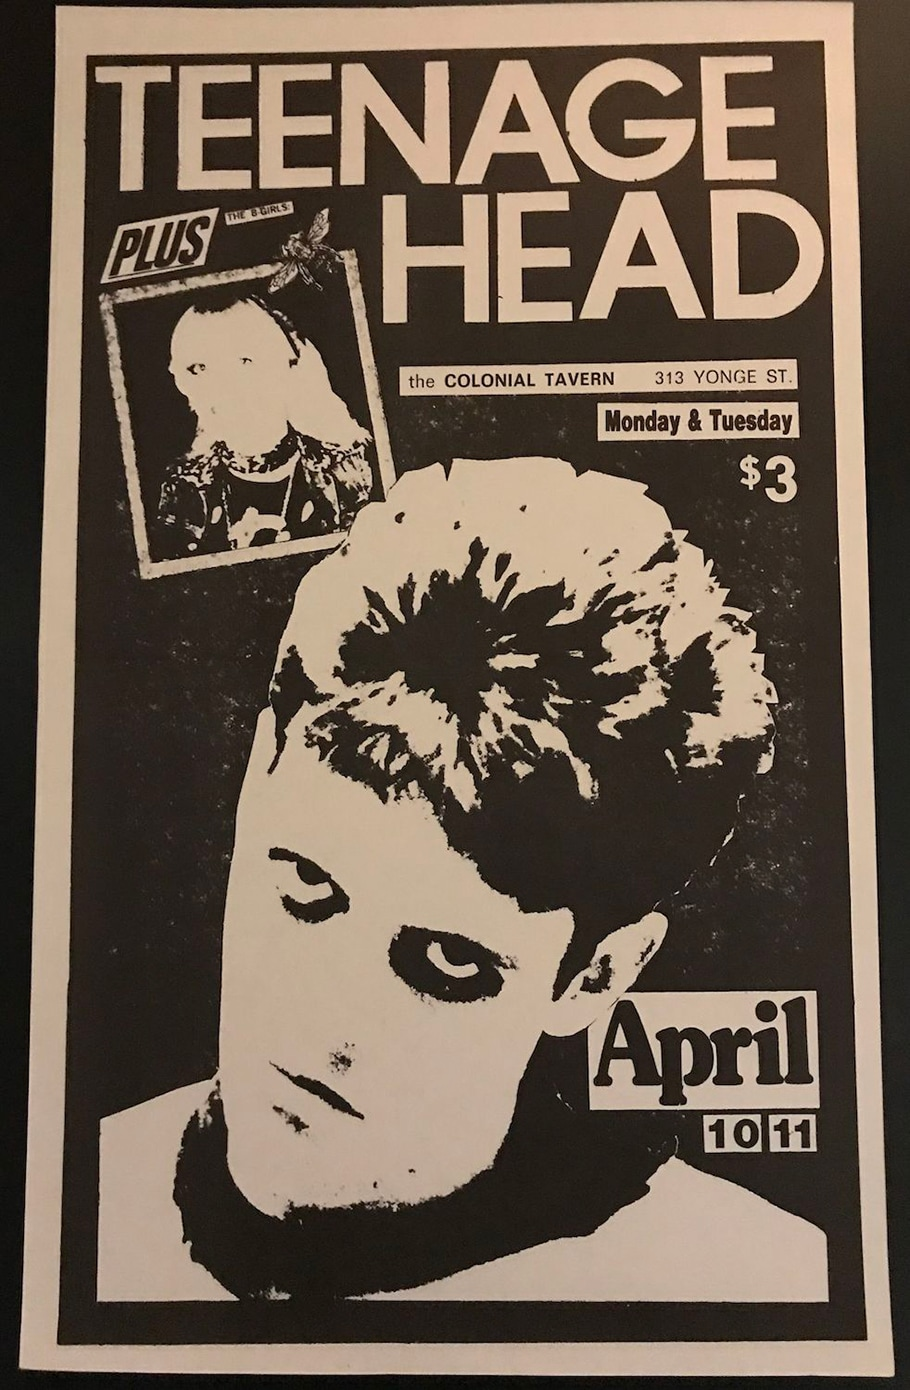 A black and white poster advertising the band Teenage Head at the Colonial Tavern on April 10,11. The majority of the image is taken up by an illustration of a man looking at the camera with an intense, unsmiling expression.